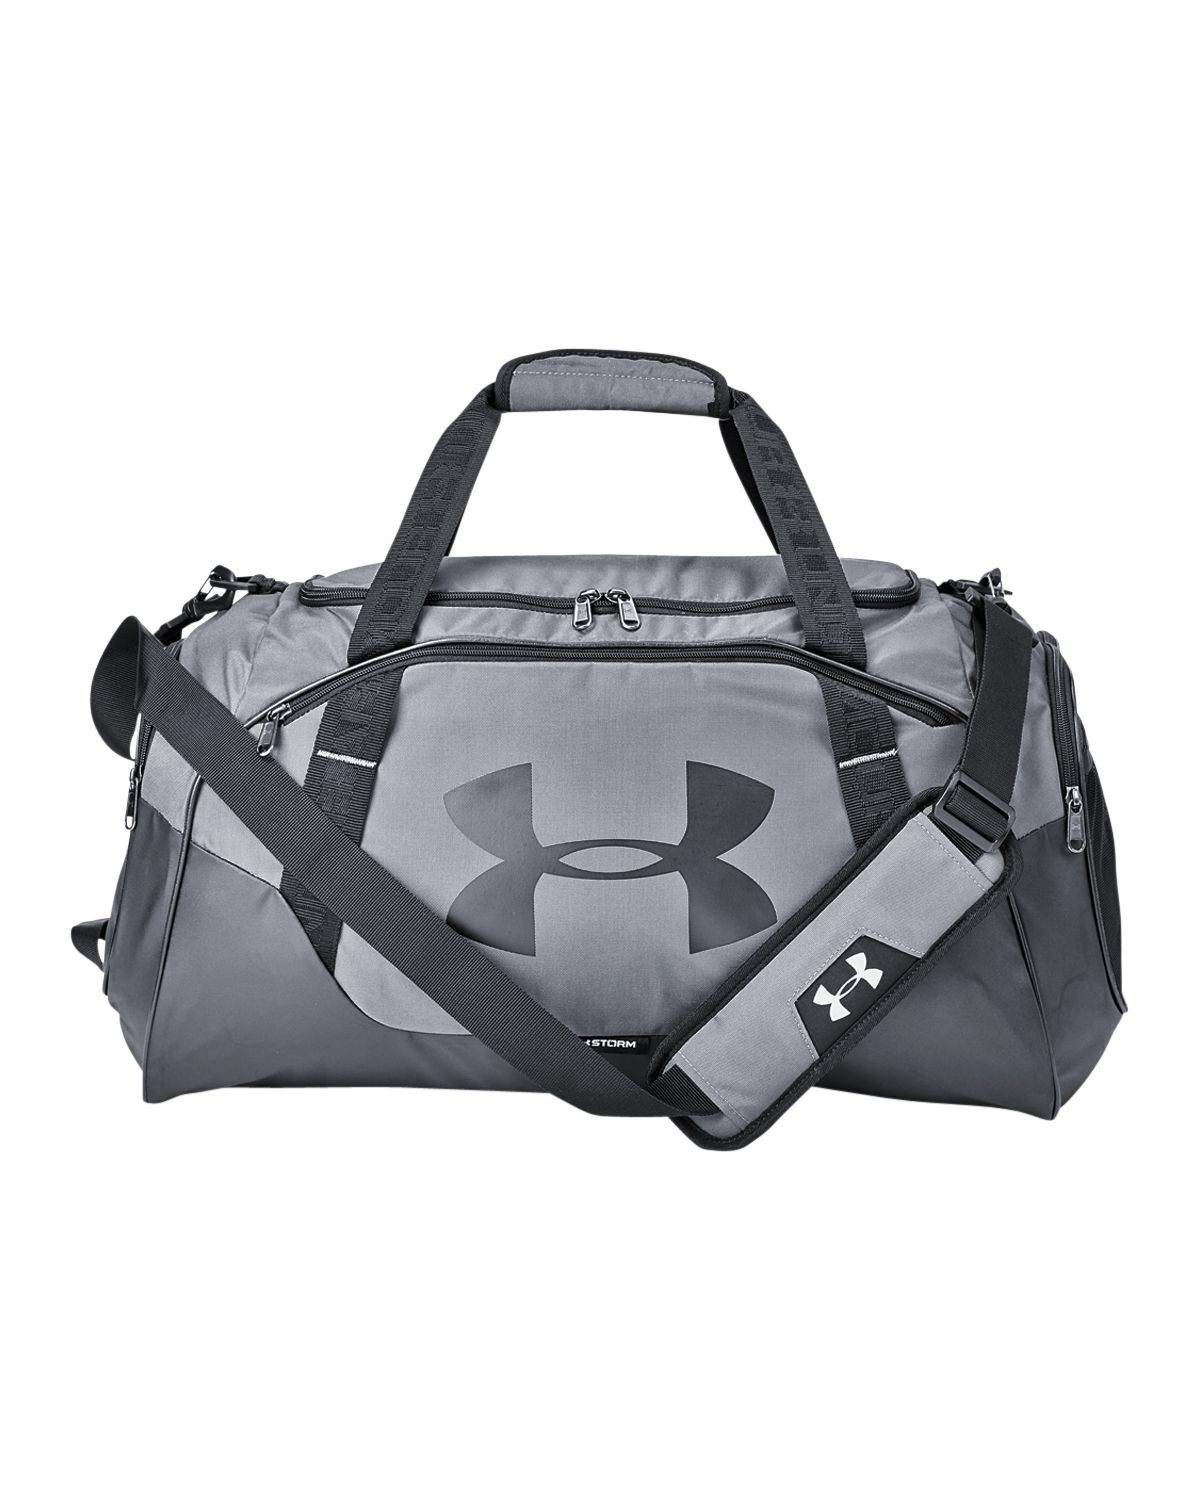 34f4d8db212 Under Armour 1300216 UA Undeniable II Duffle Large Bag